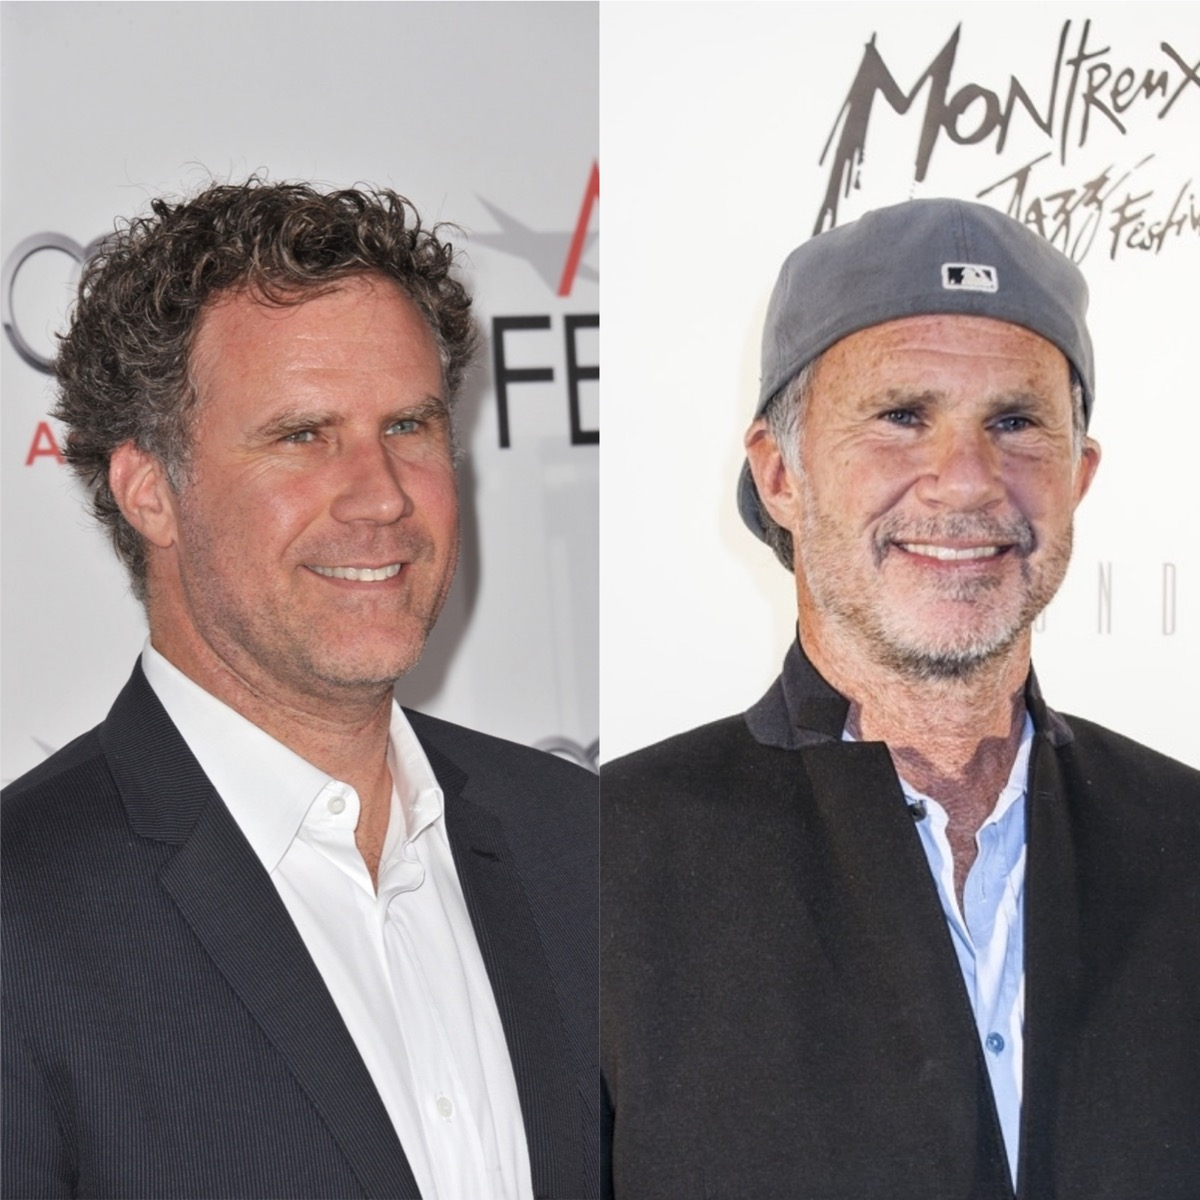 Will Ferrell and Chad Smith